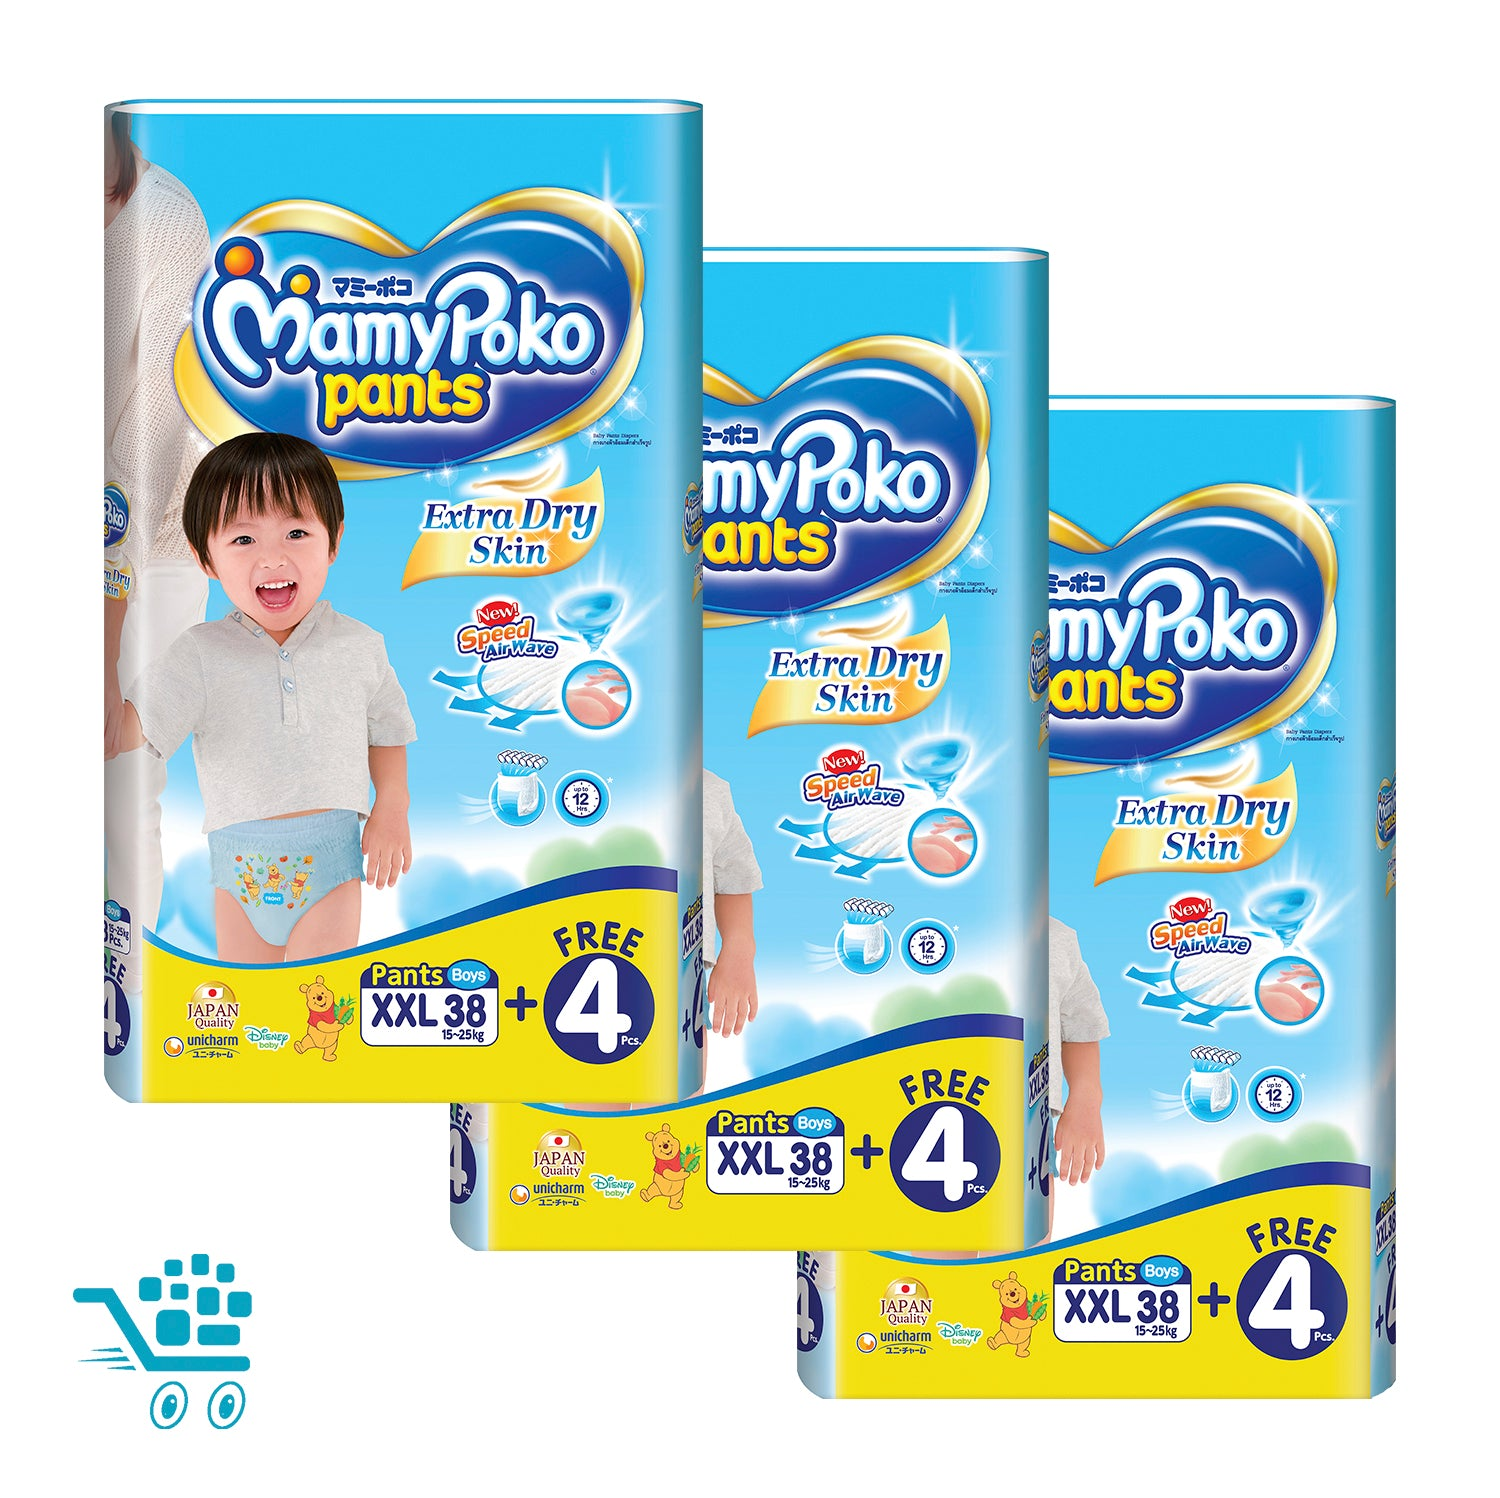 MamyPoko Extra Dry Skin Pants Bonus Pack Boy XXL 38+4 pieces x 3 packs